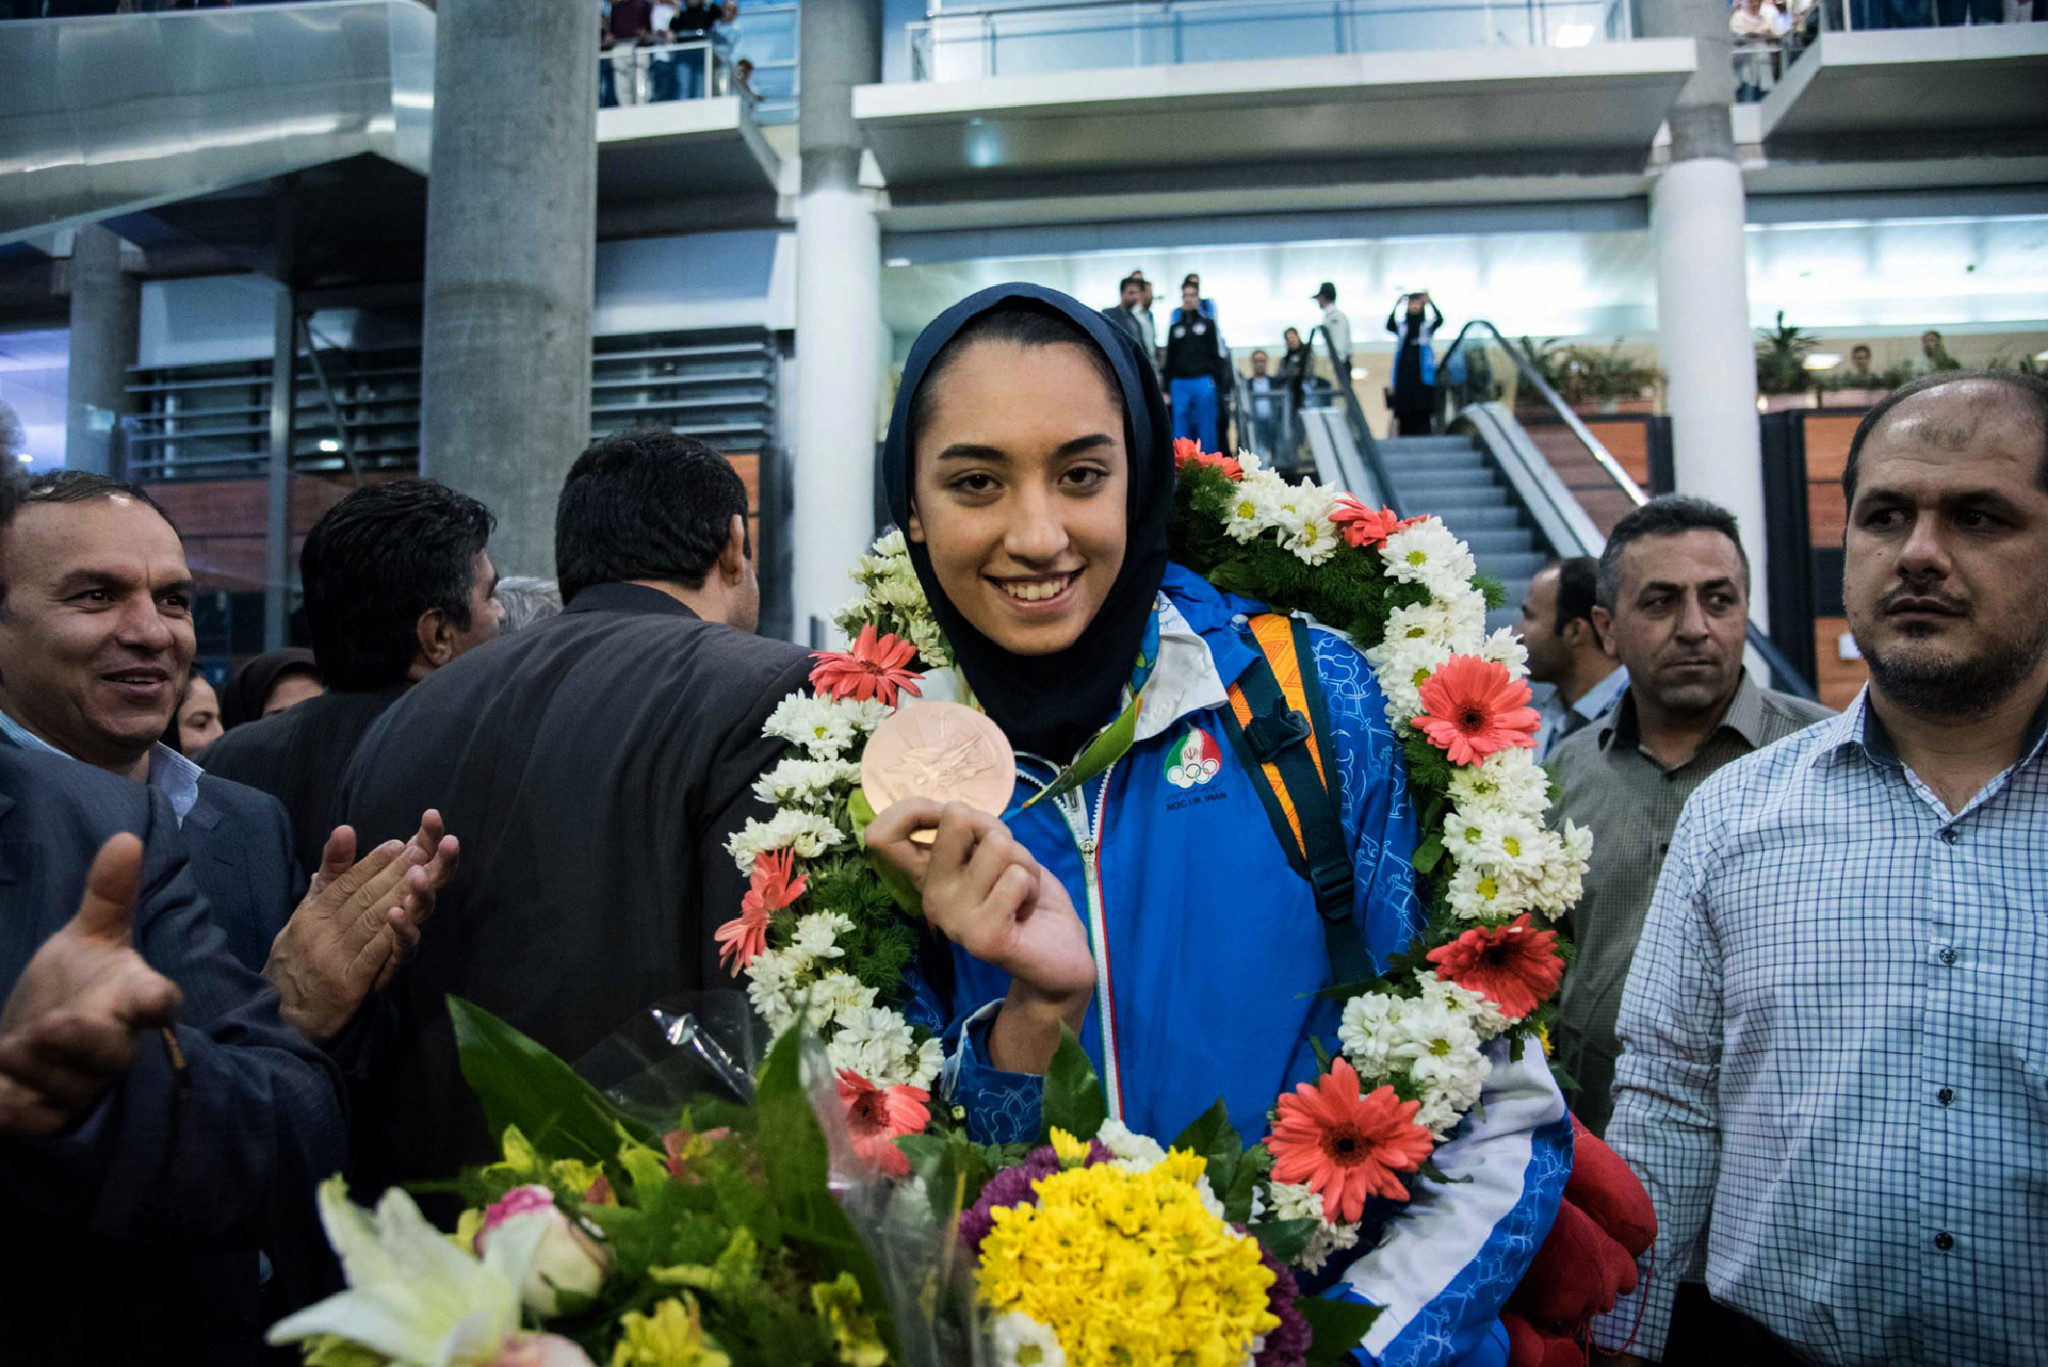 Kimia Alizadeh became the first Iranian woman to win an Olympic medal after earning taekwondo bronze at Rio 2016 ©Getty Images